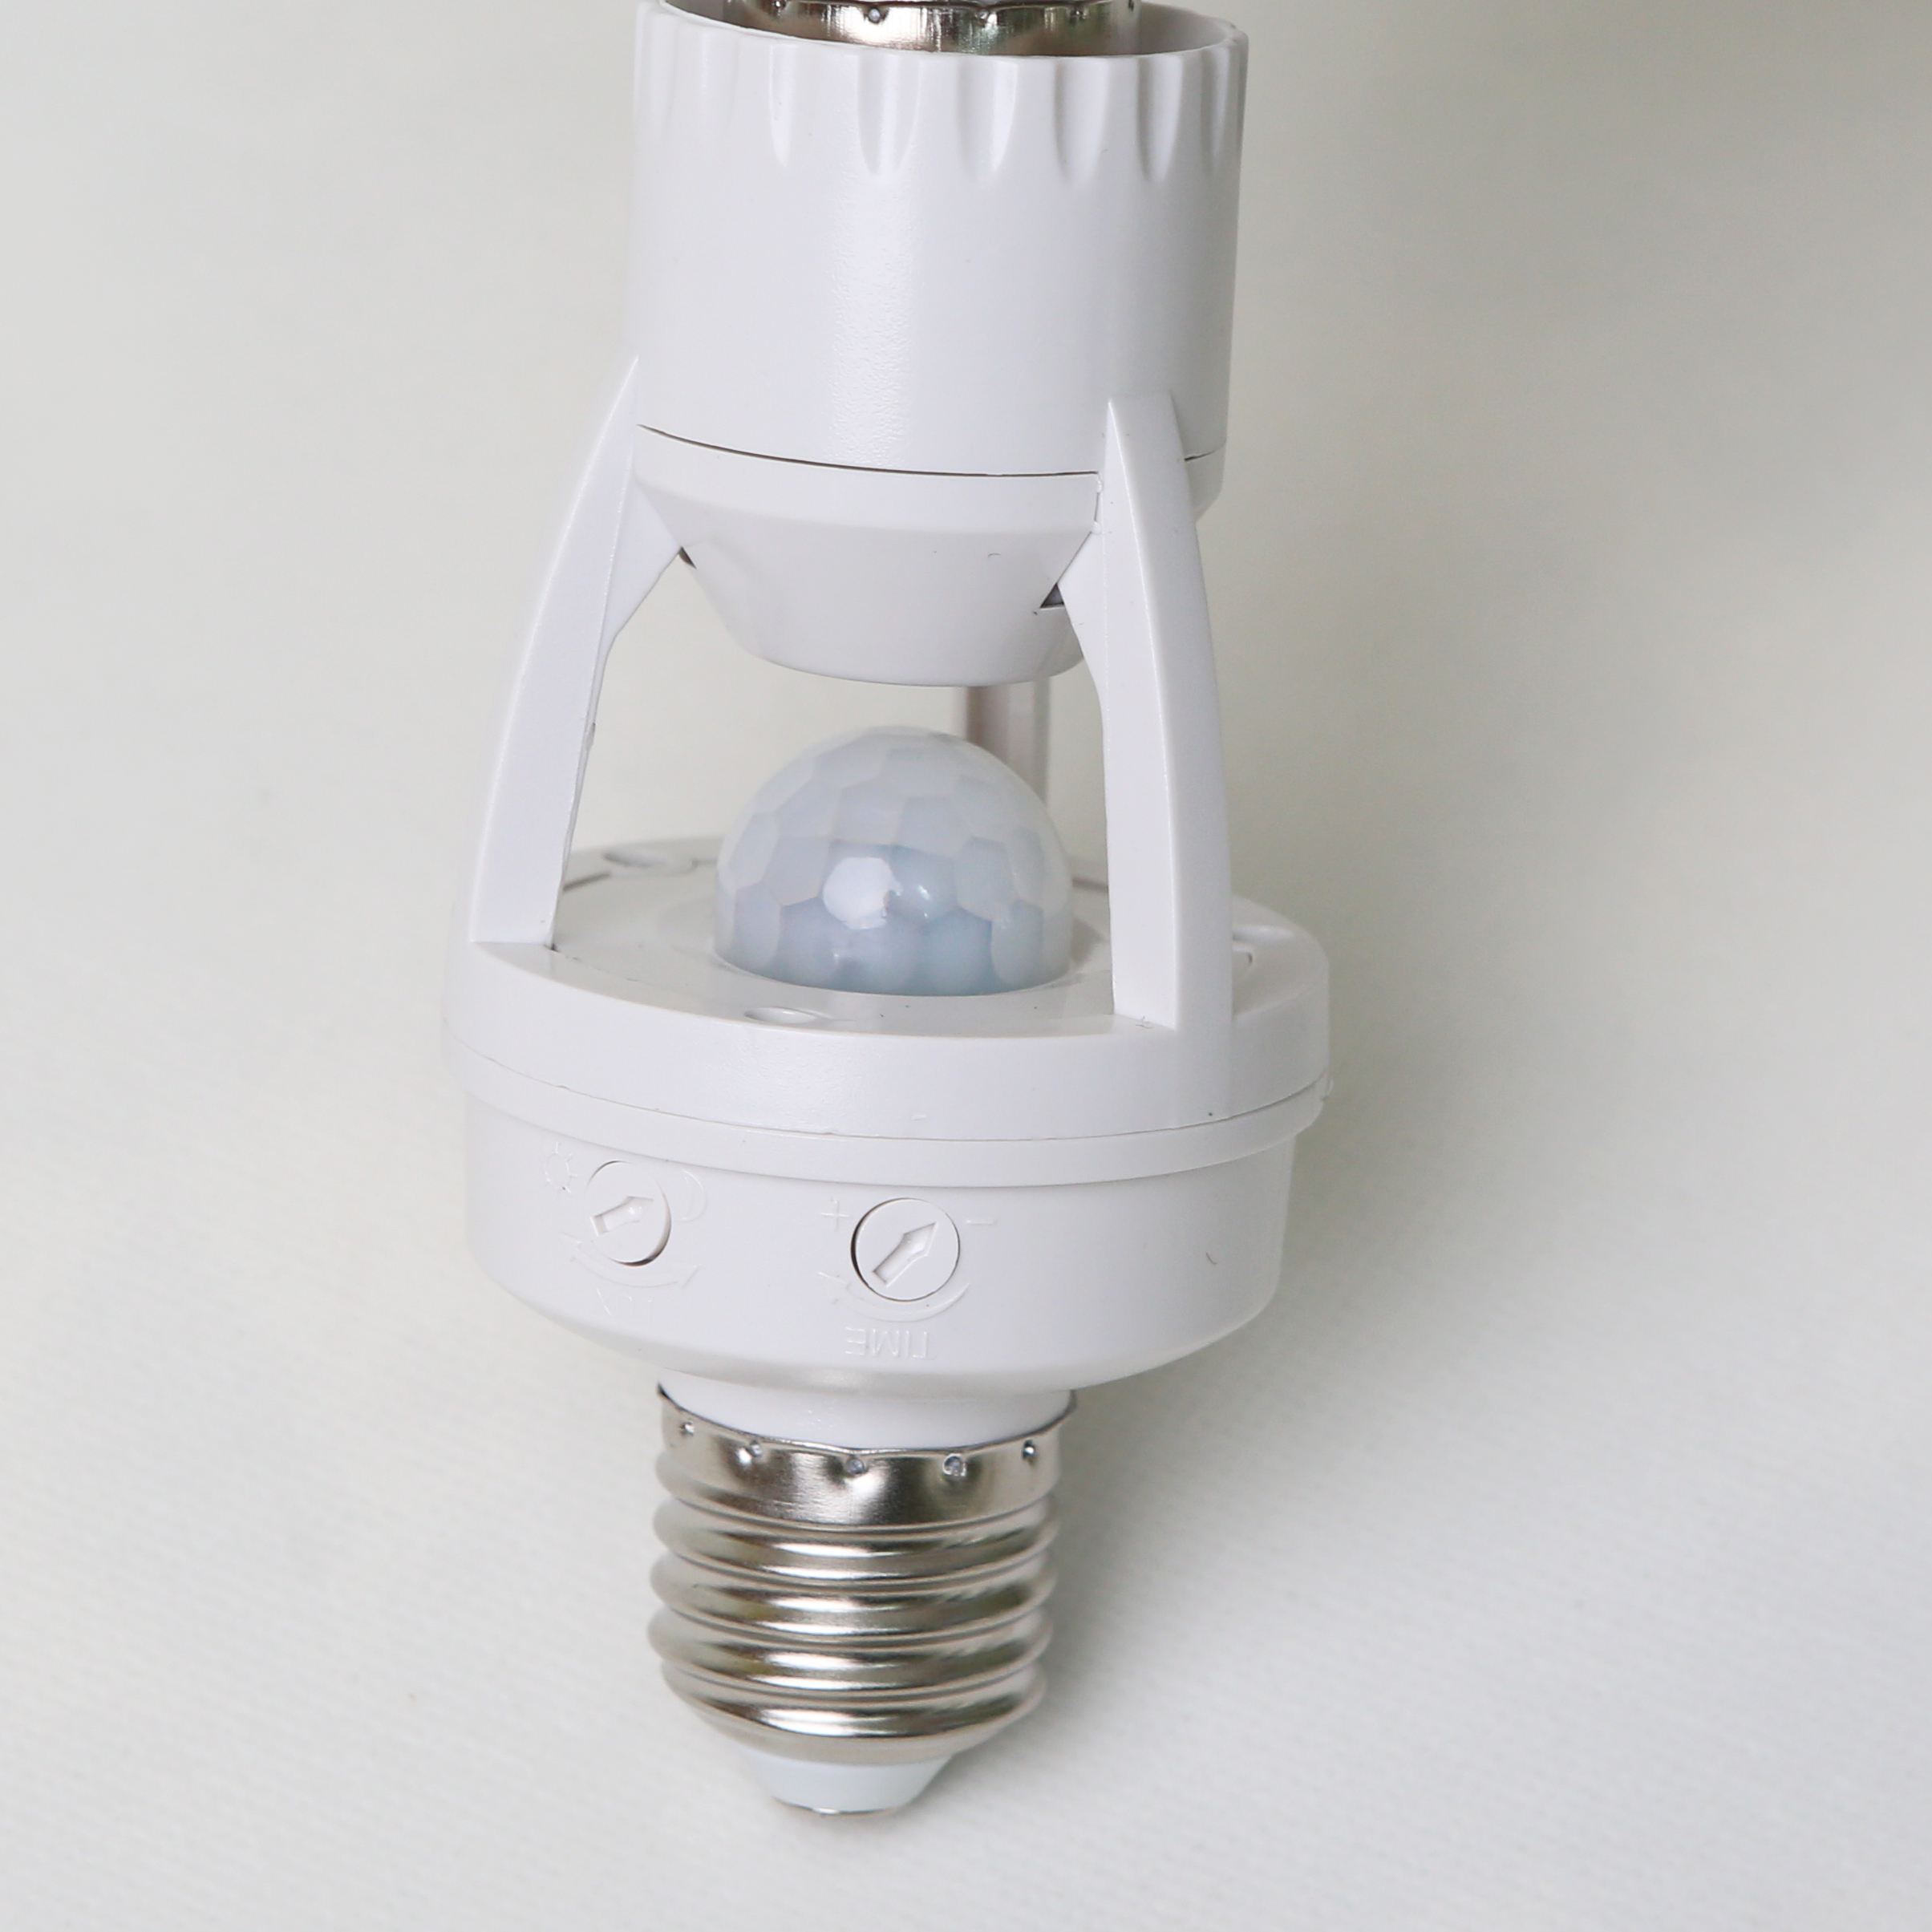 lamp base adapter <strong>E27</strong> to <strong>E27</strong> with PIR motion sensor